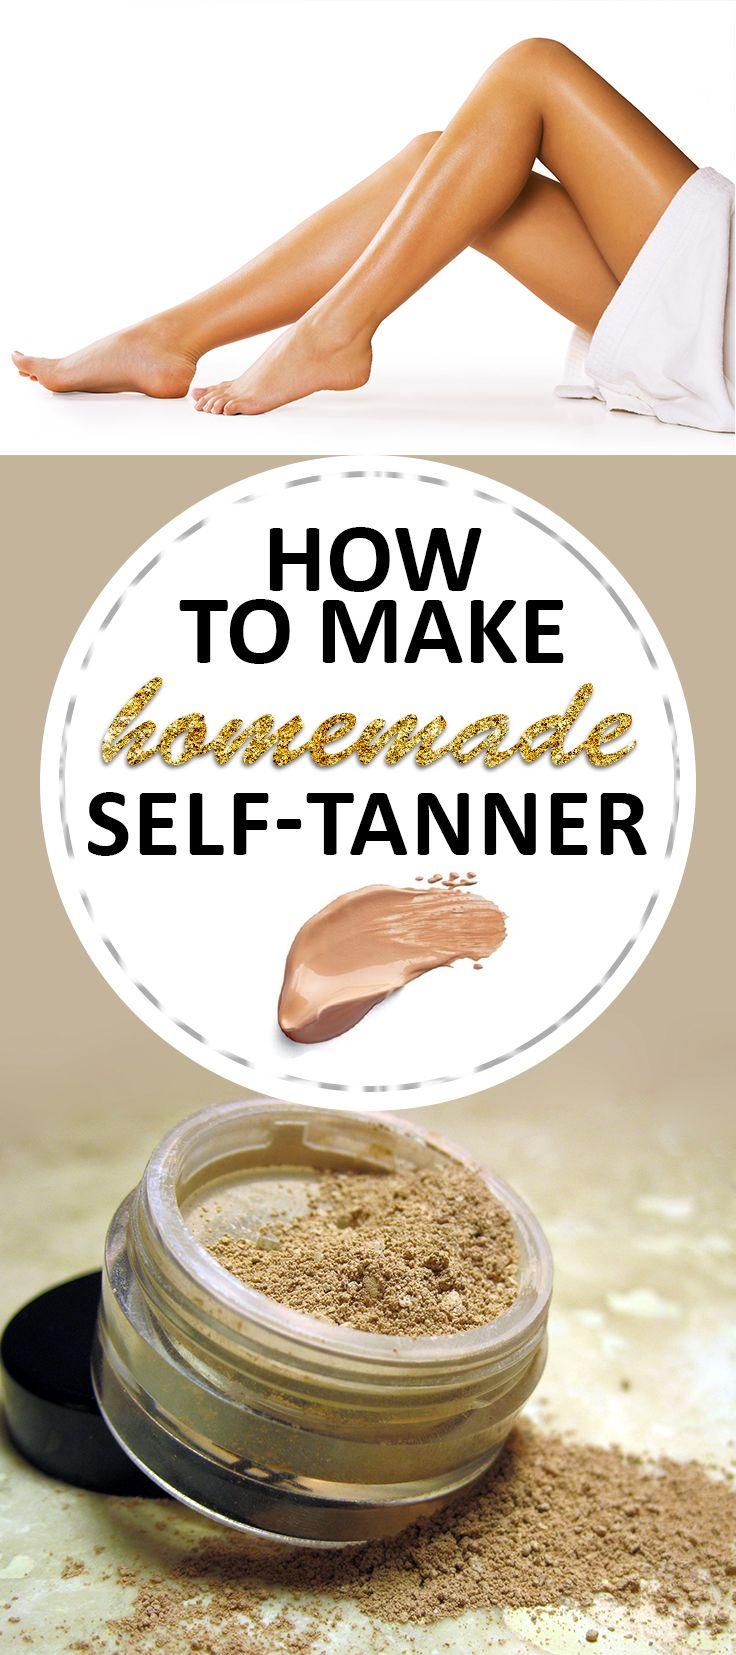 I Did A Little Research And Found An Amazing Self Tanner That Works  Wonders! It